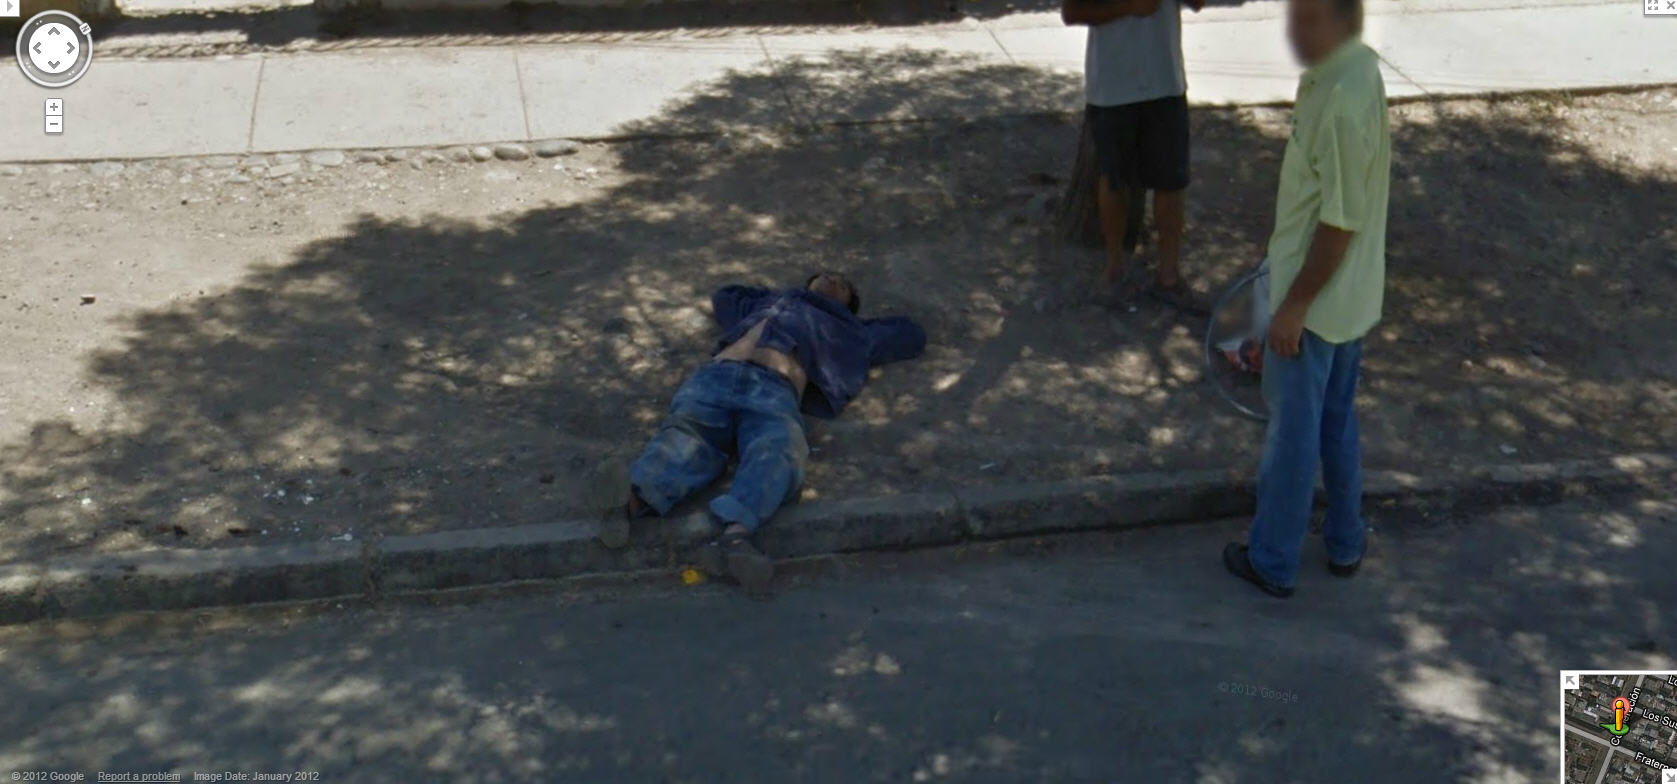 is-this-man-captured-by-google-street-view-from-chile-dead-or-sleeping